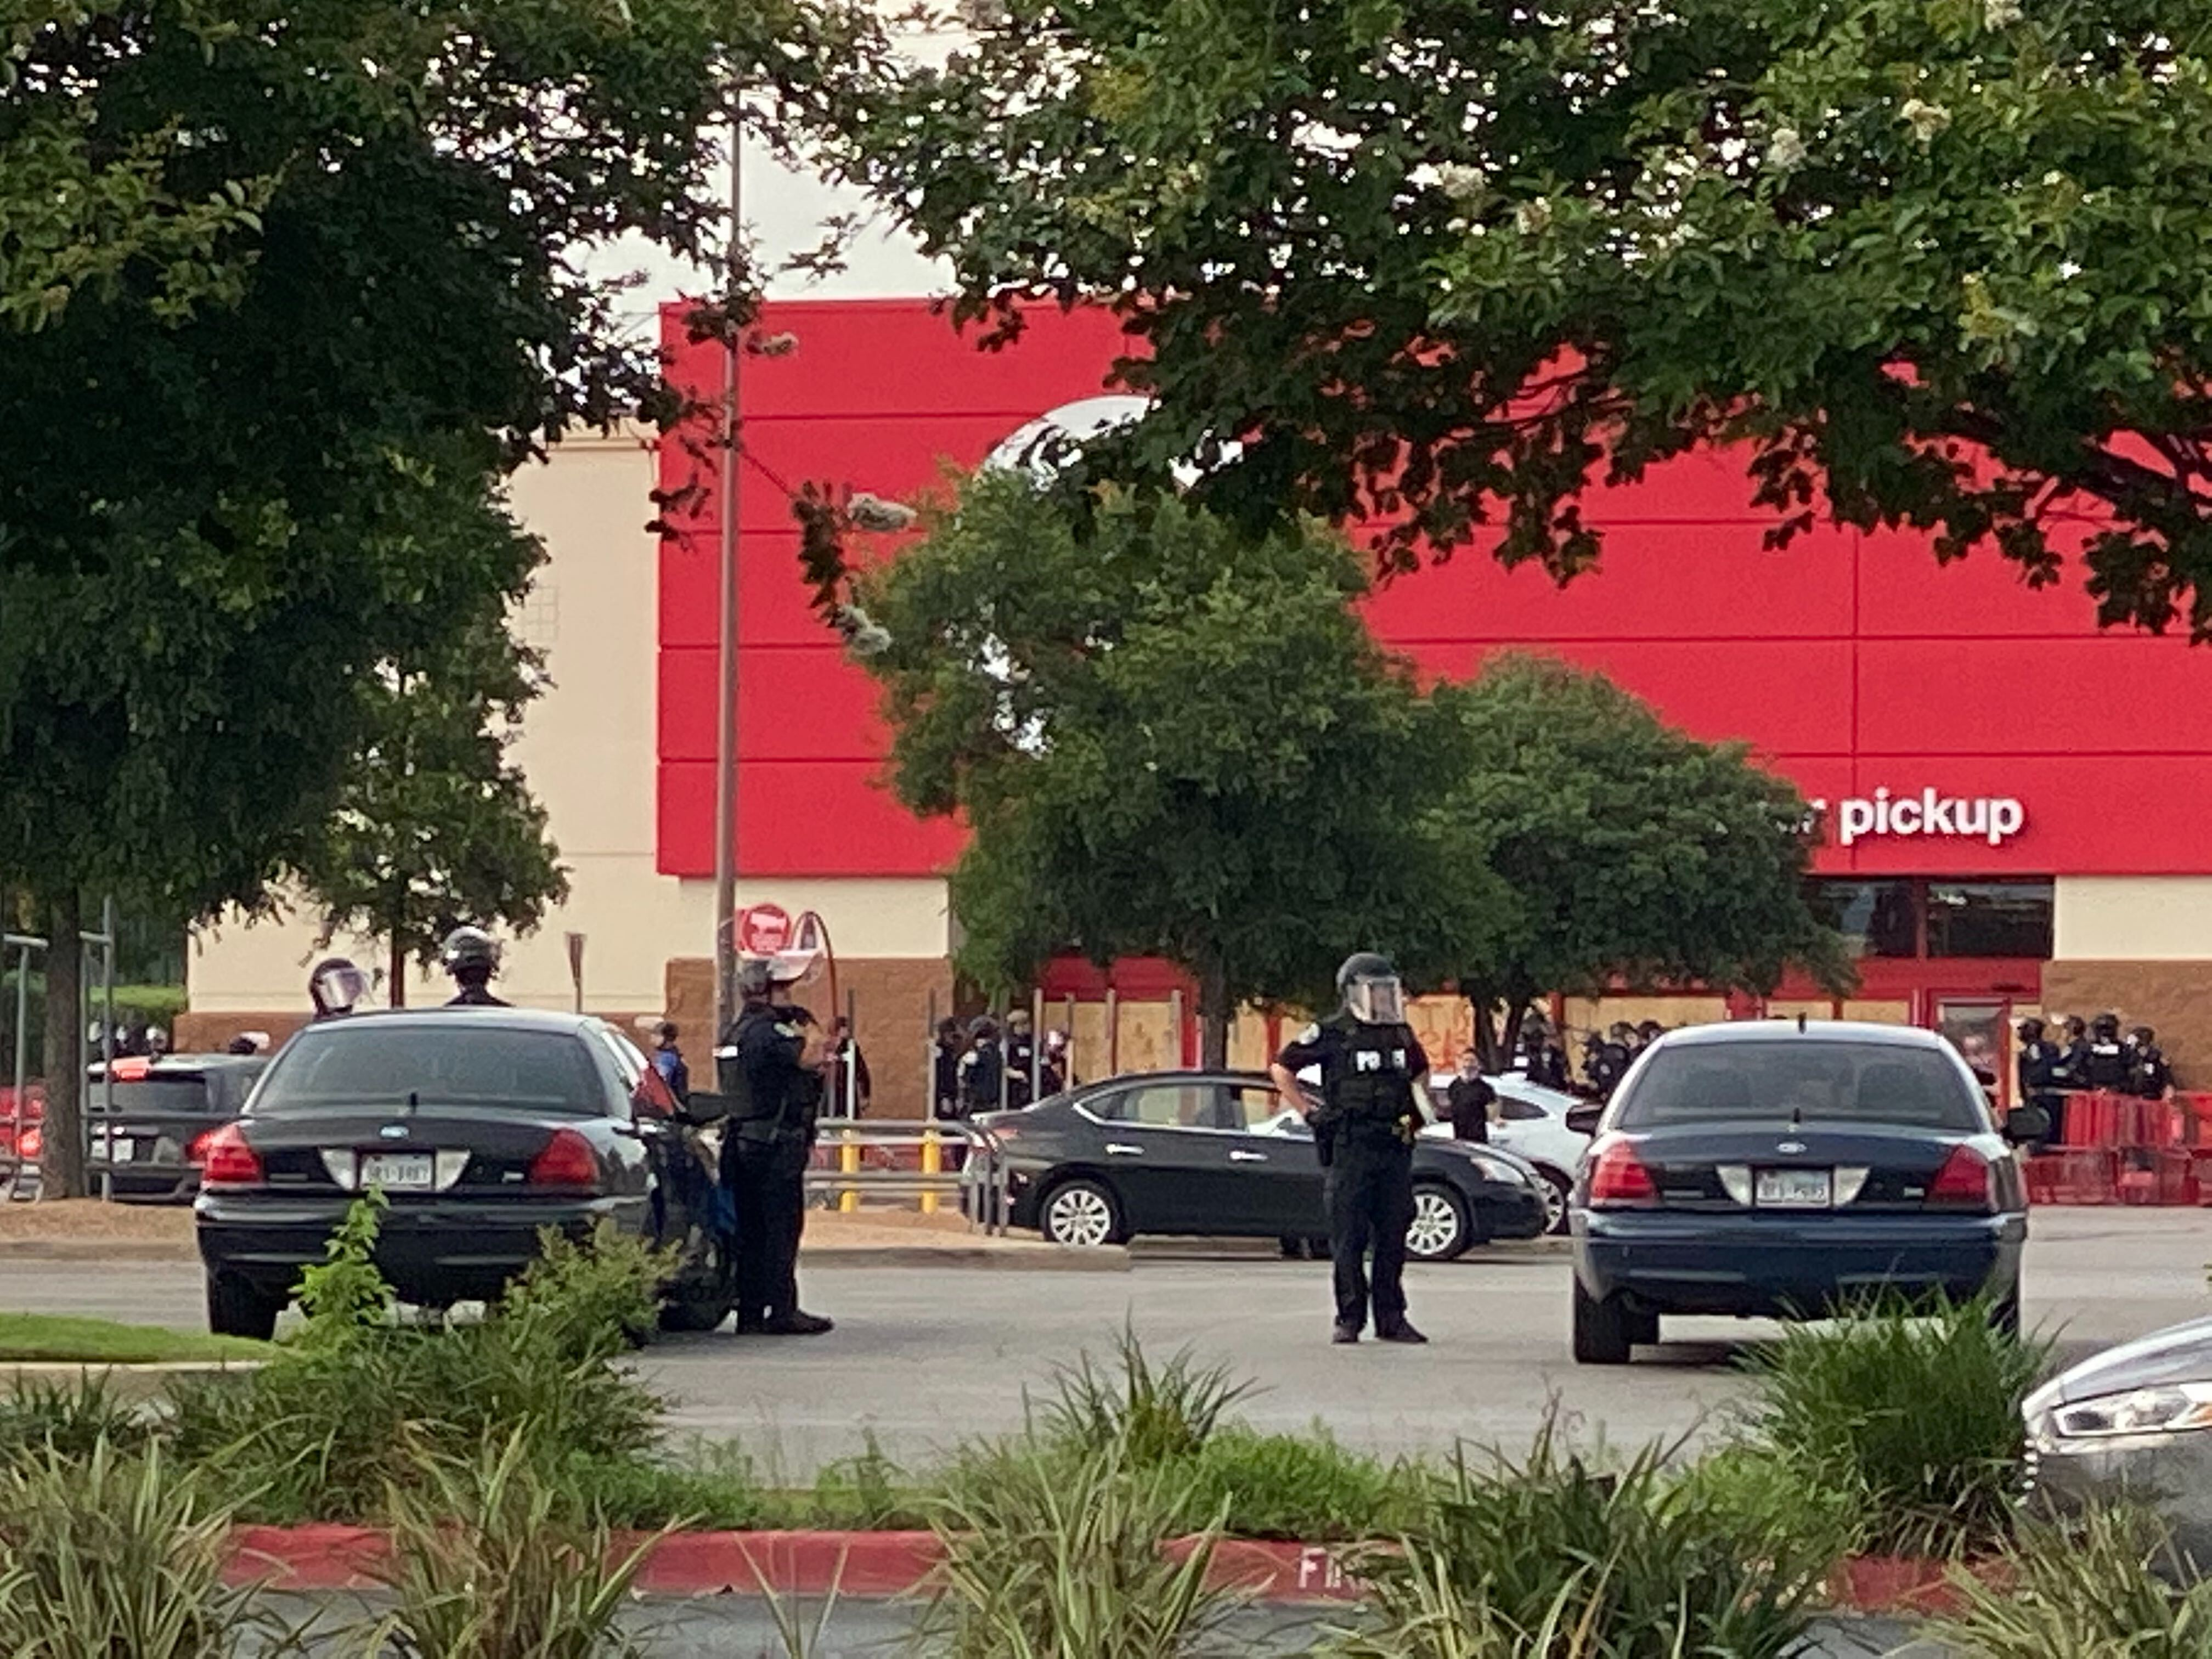 Austin police - looting at Capital Plaza target